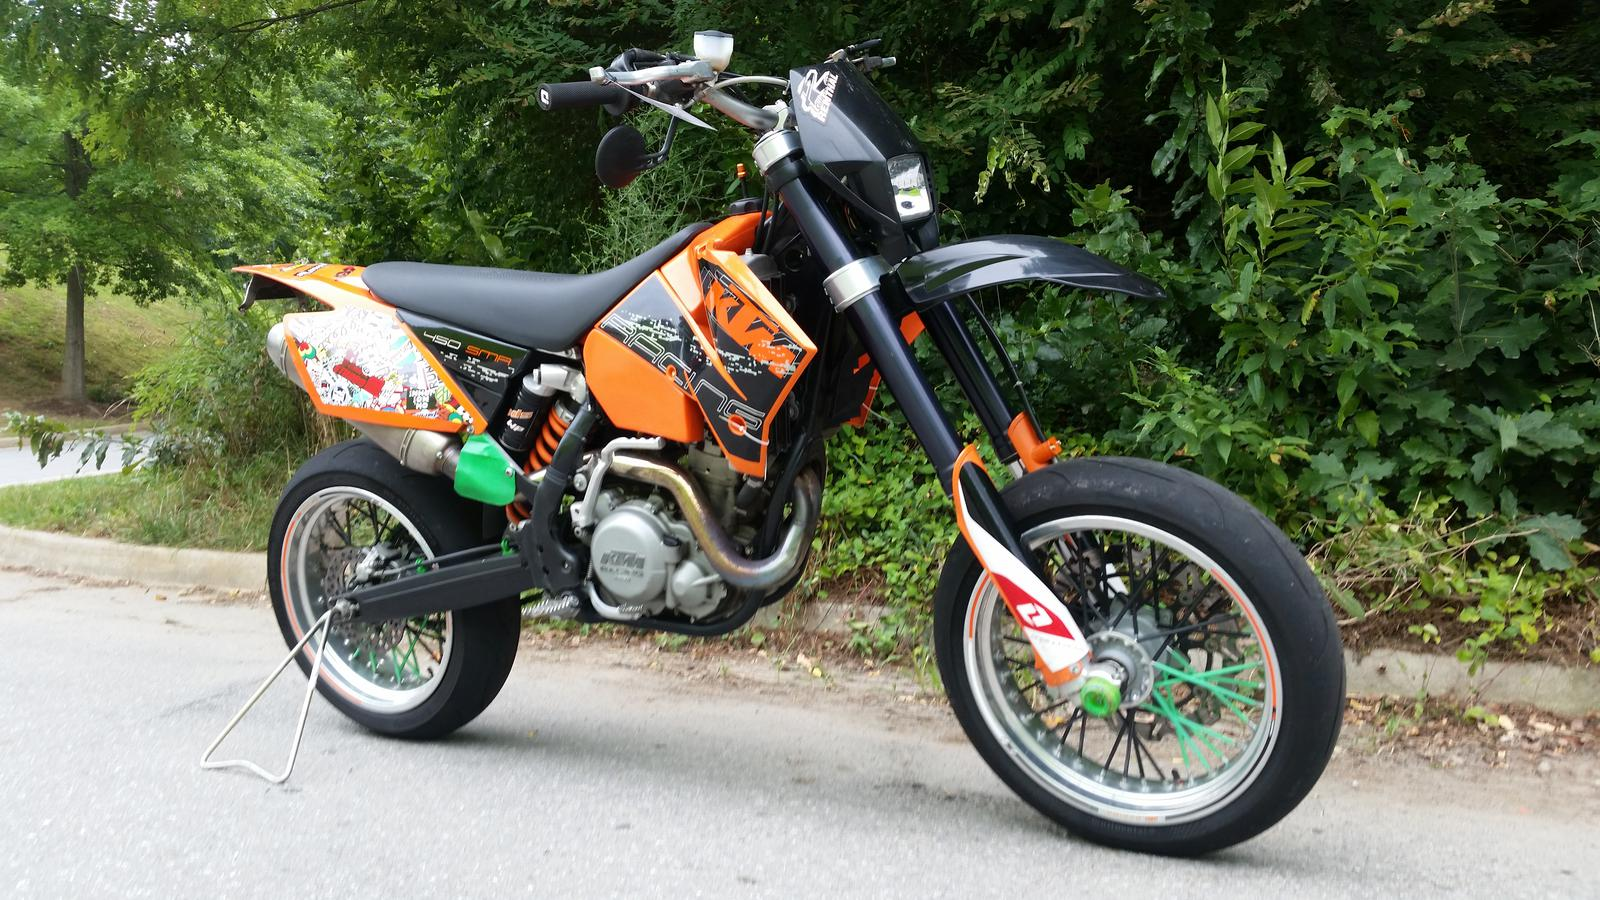 2006 KTM SMR 450 for sale in Asheville, NC | Garage TRS (828) 707-3898